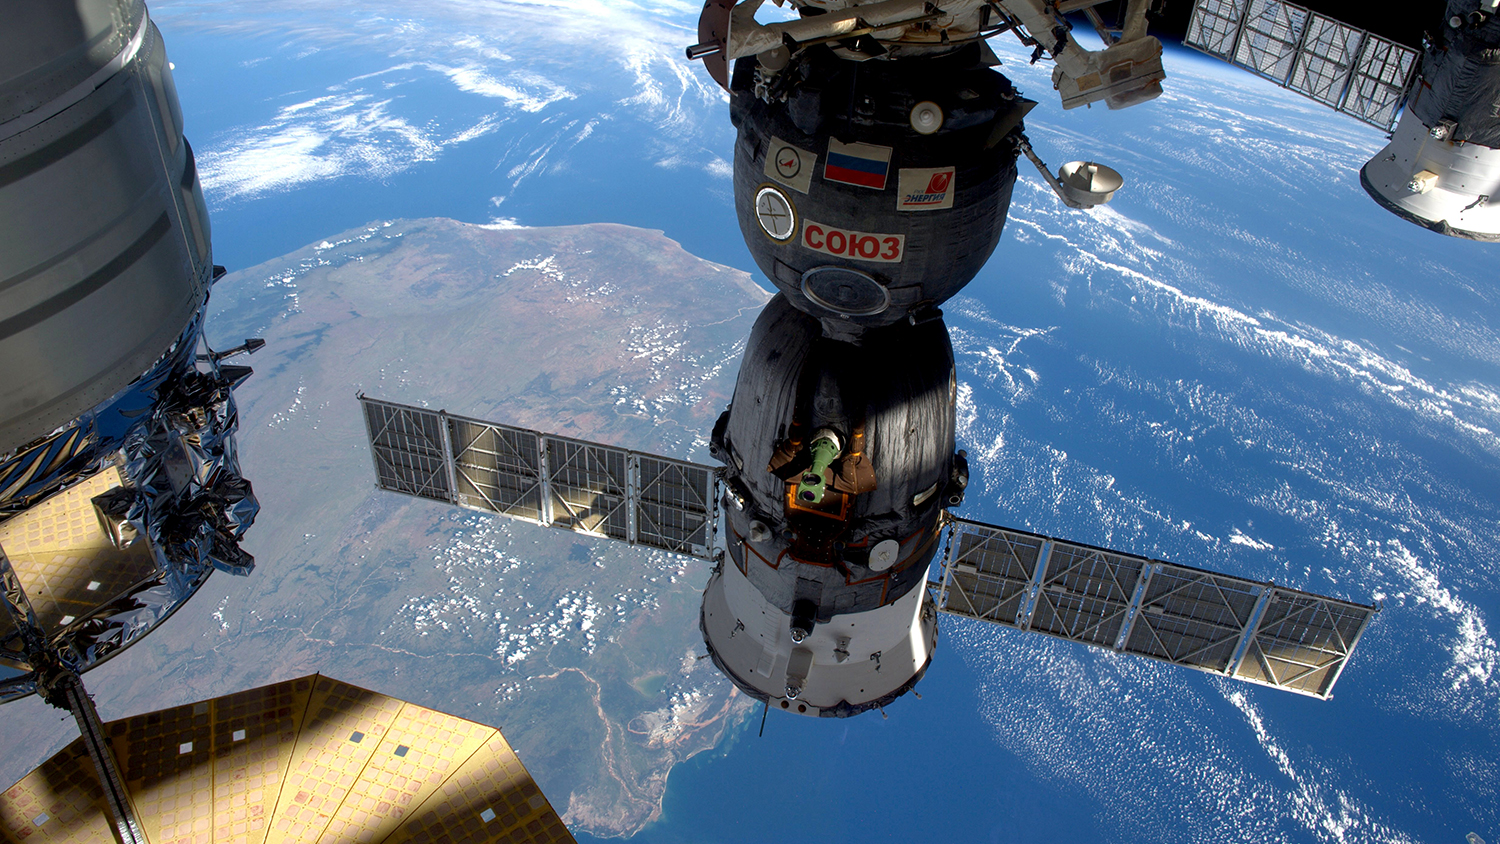 Satellite in space, with view of Earth